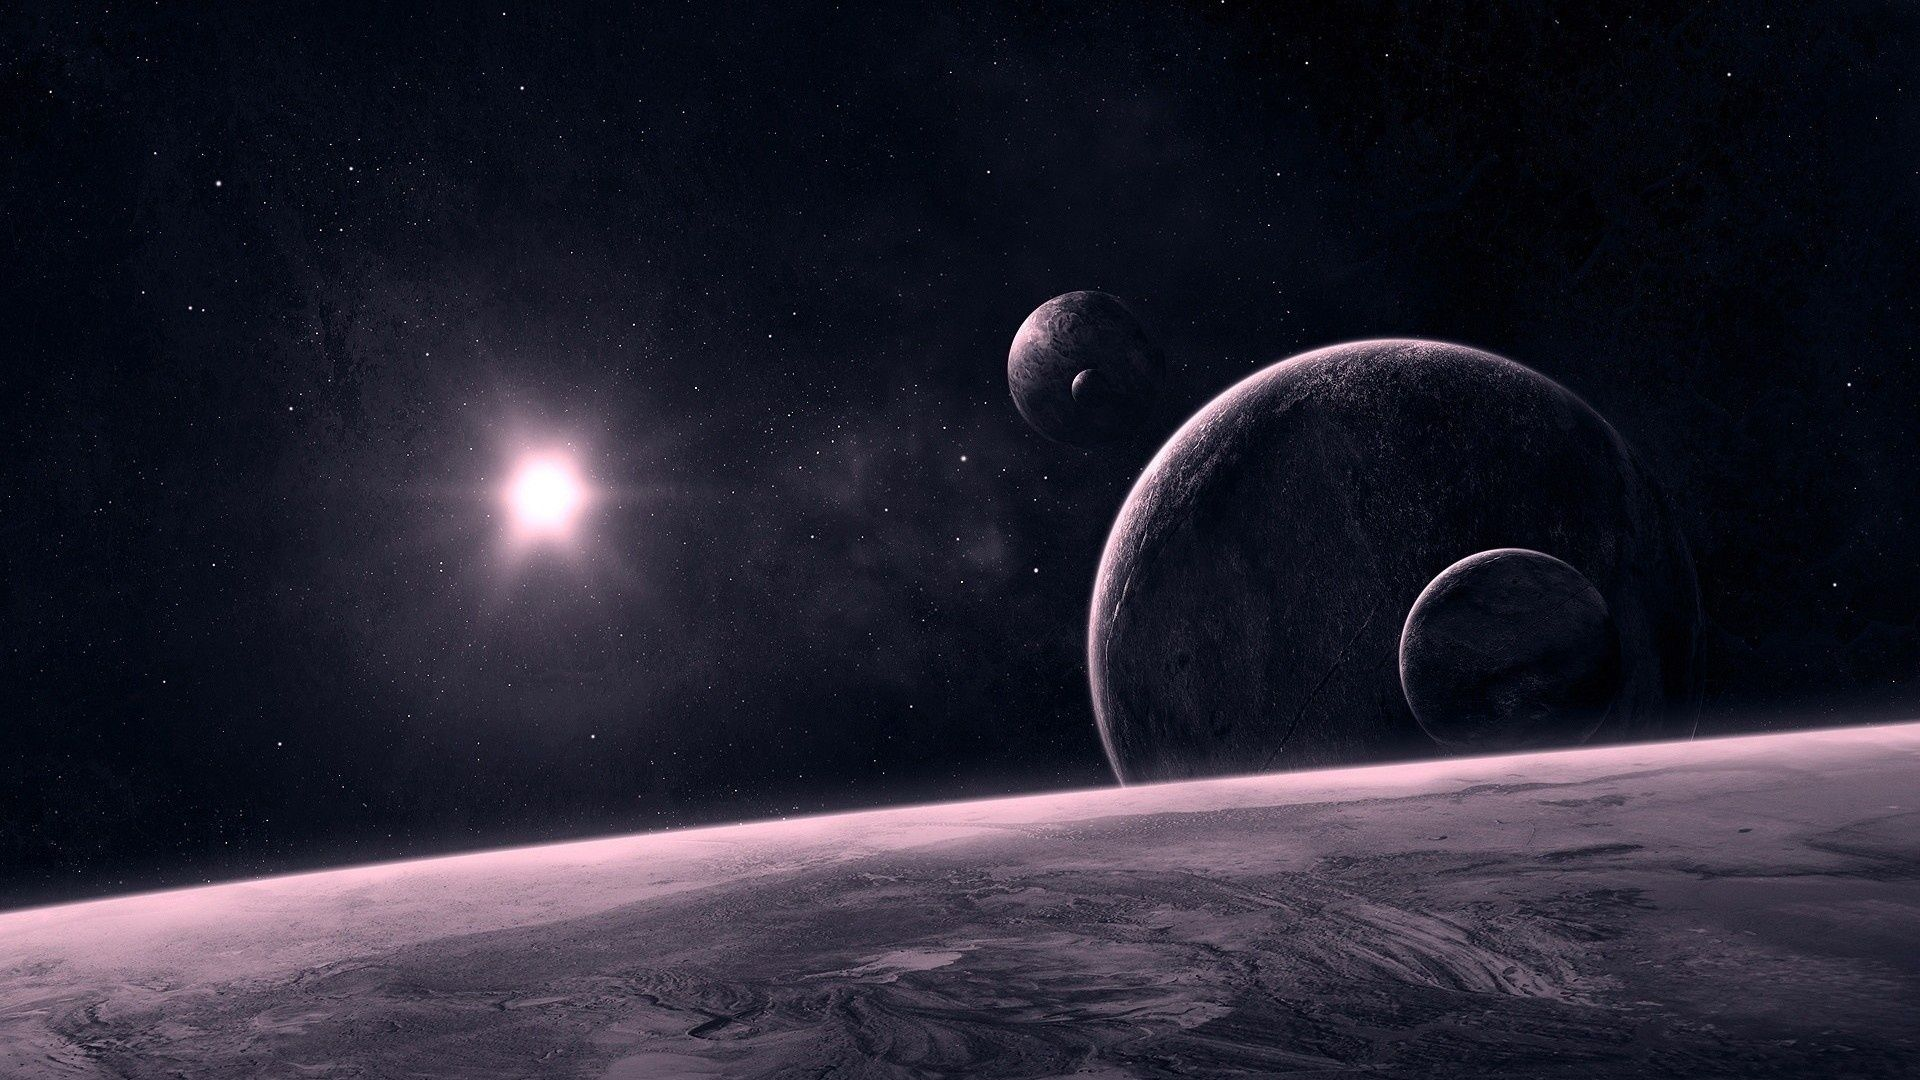 Celestial Space Wallpapers   Top Free Celestial Space Backgrounds ...